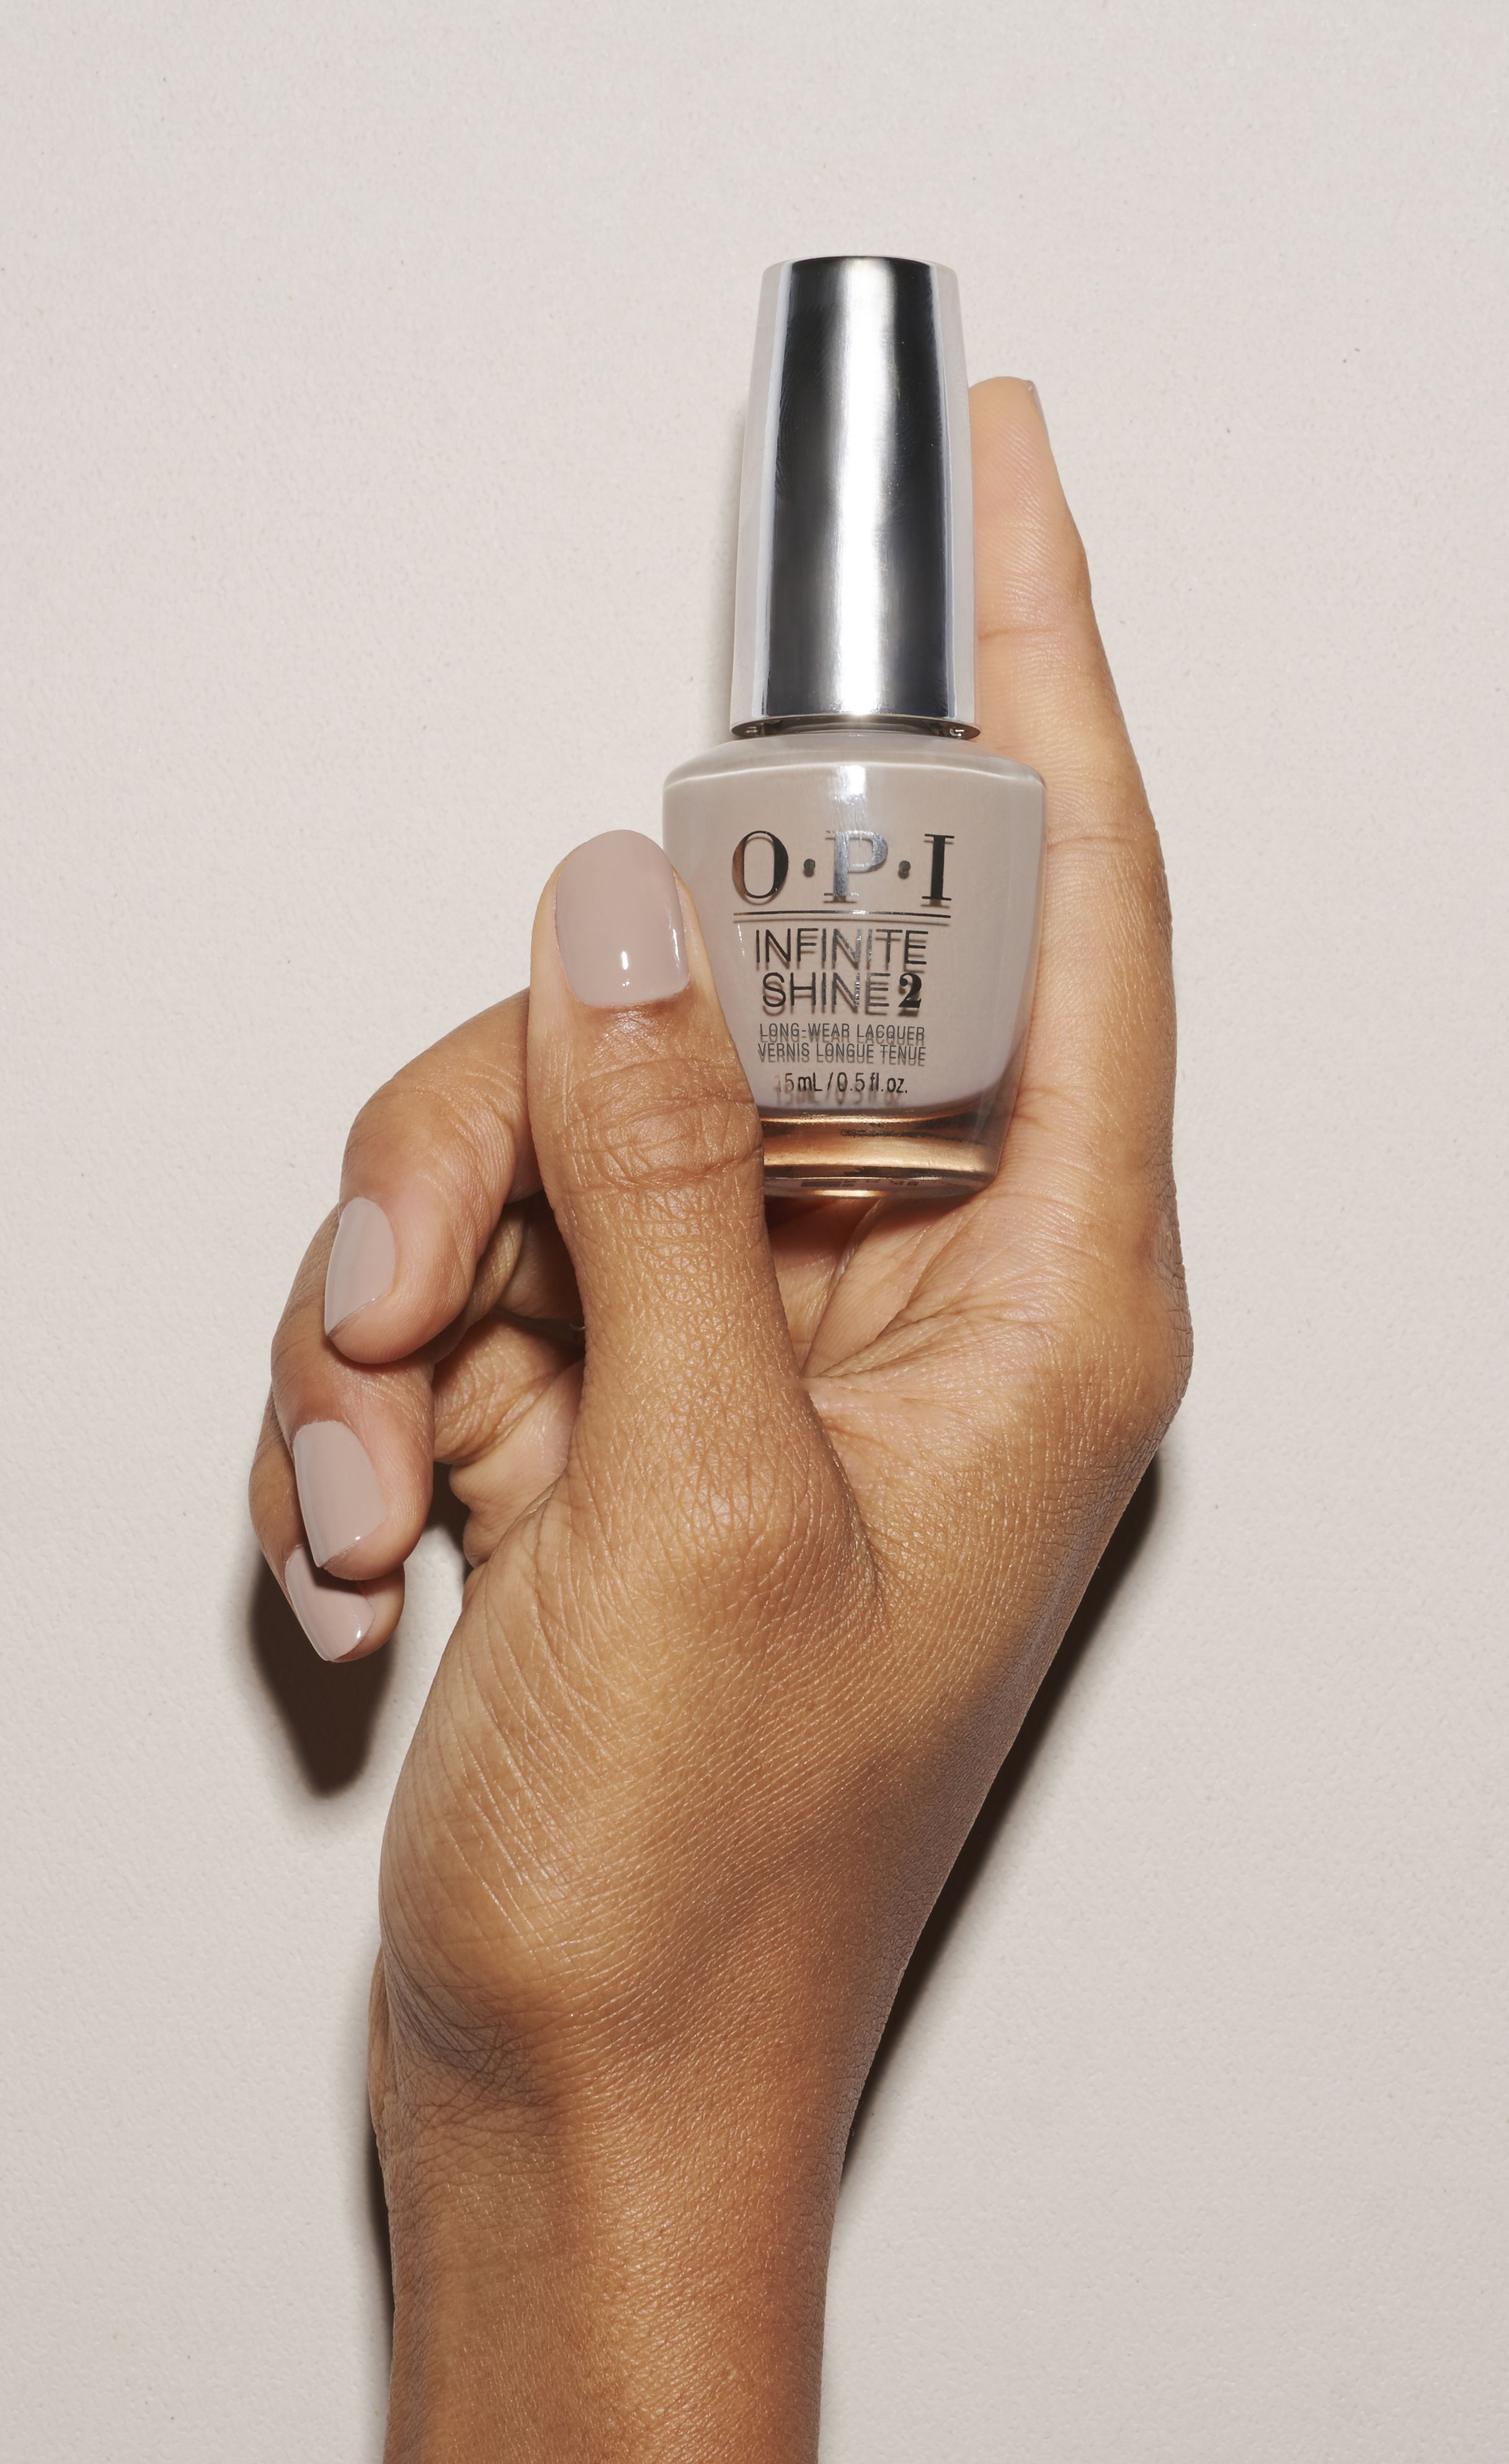 For those who like to keep things simple we give you Coconuts Over OPI